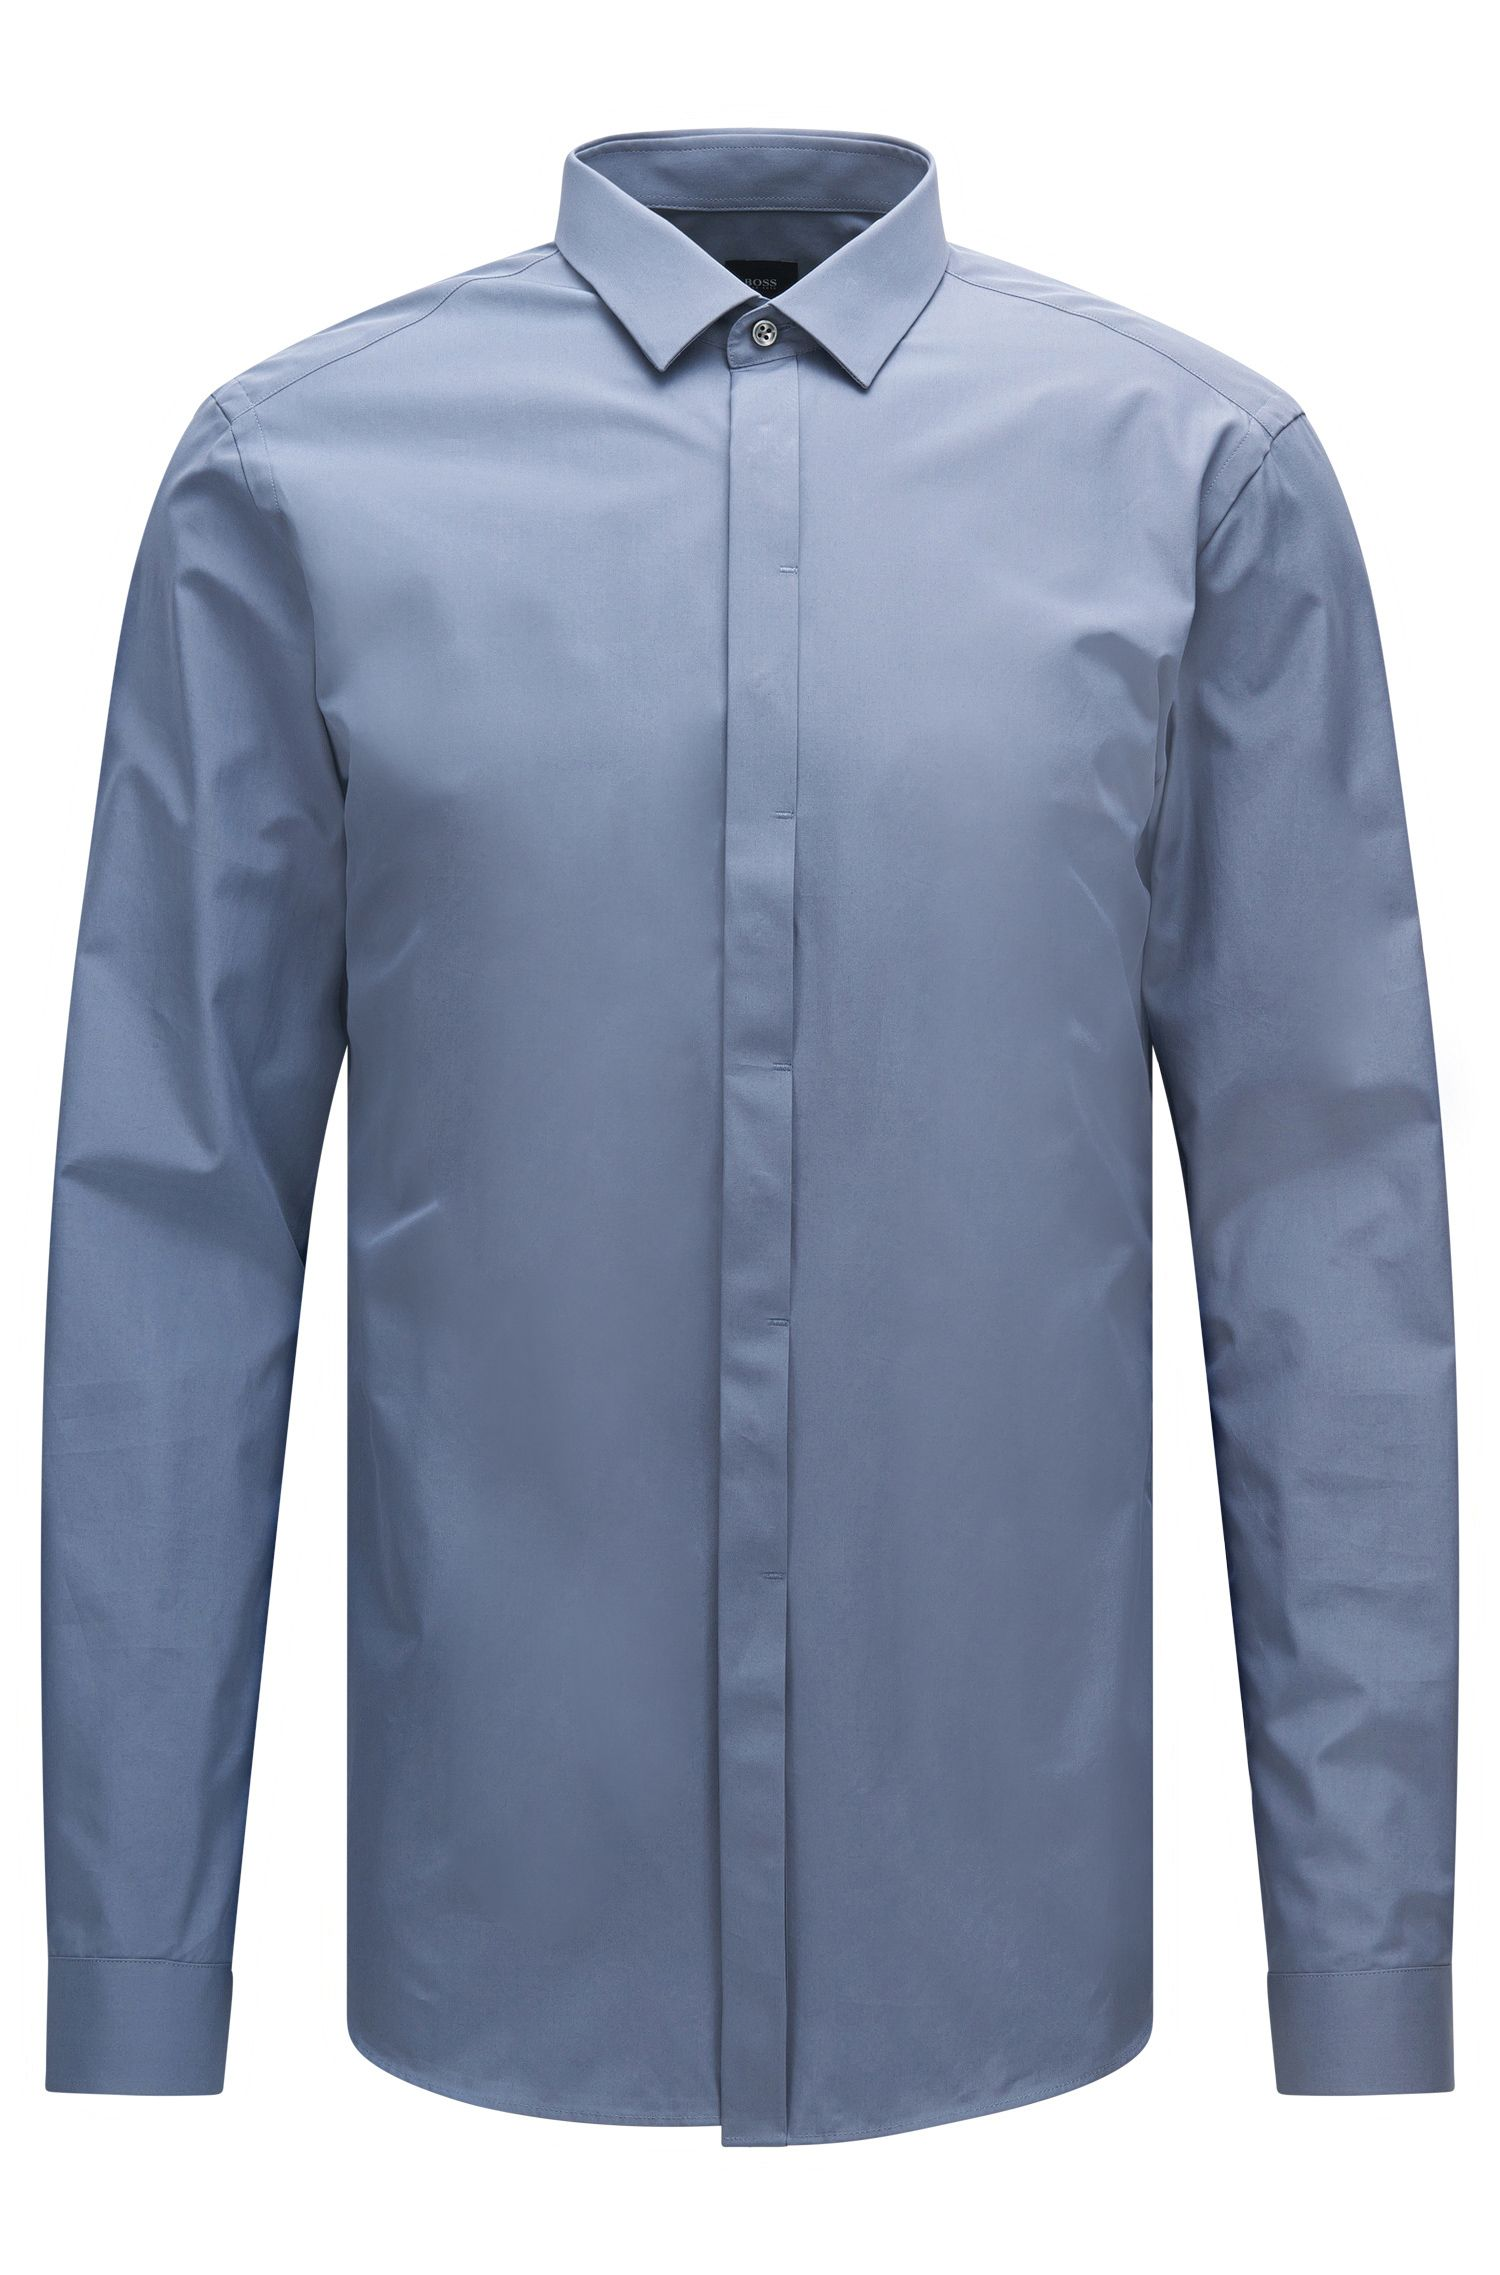 Chemise Slim Fit Tailored, en coton uni : « T-Craig »